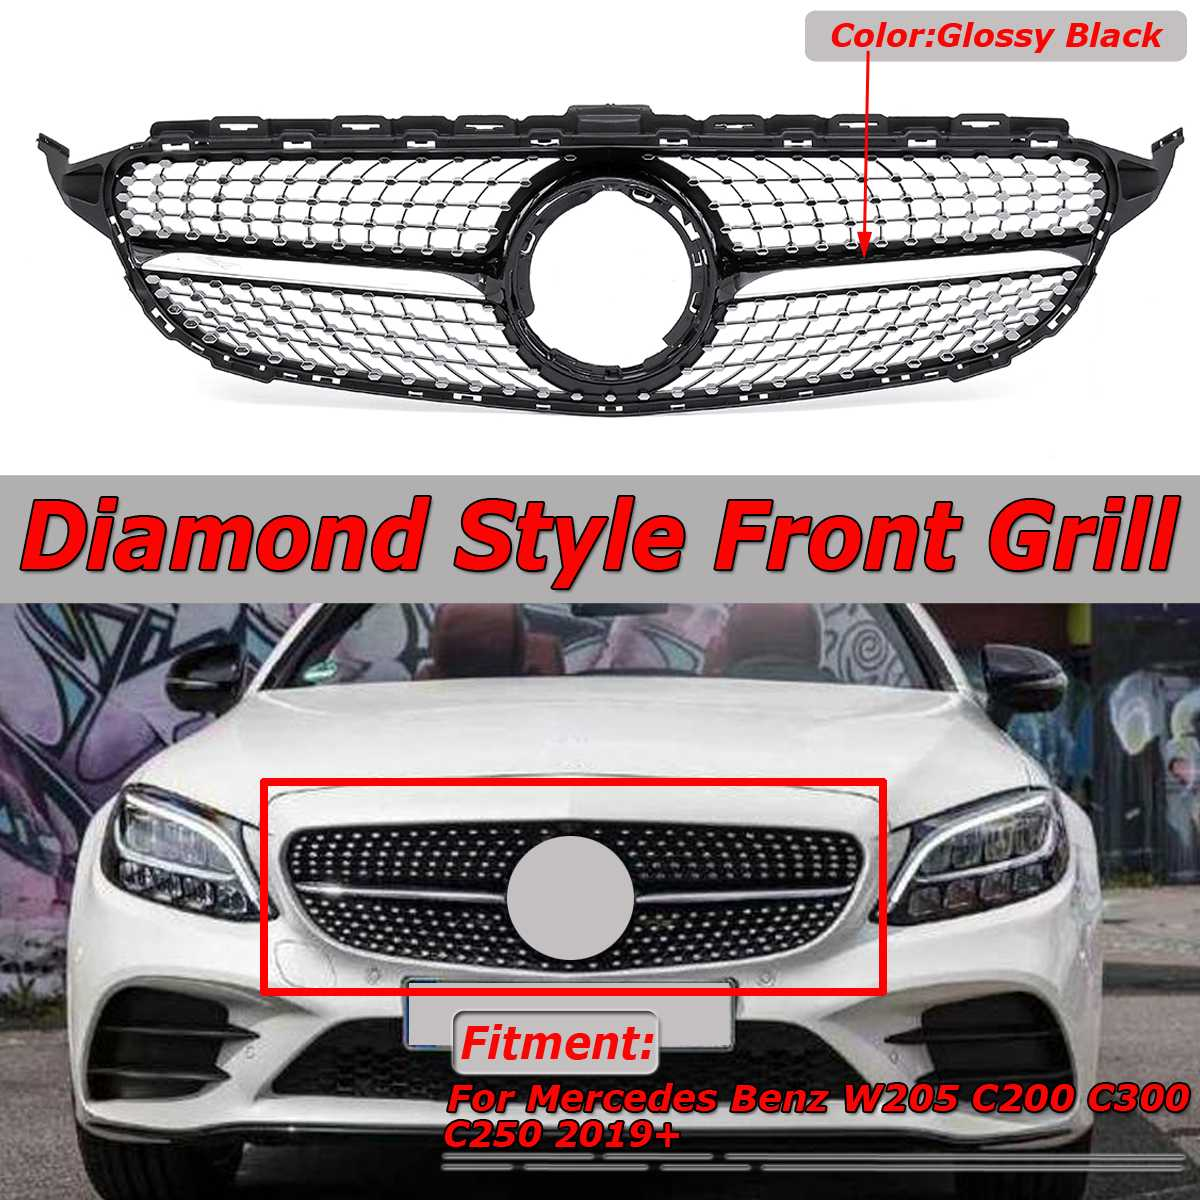 New Diamond Style Car Front Grille Grill Cover Trim <font><b>For</b></font> <font><b>Mercedes</b></font> <font><b>For</b></font> Benz W205 <font><b>C200</b></font> C300 C250 <font><b>2019</b></font>+ Golssy Black / Chrome Silver image